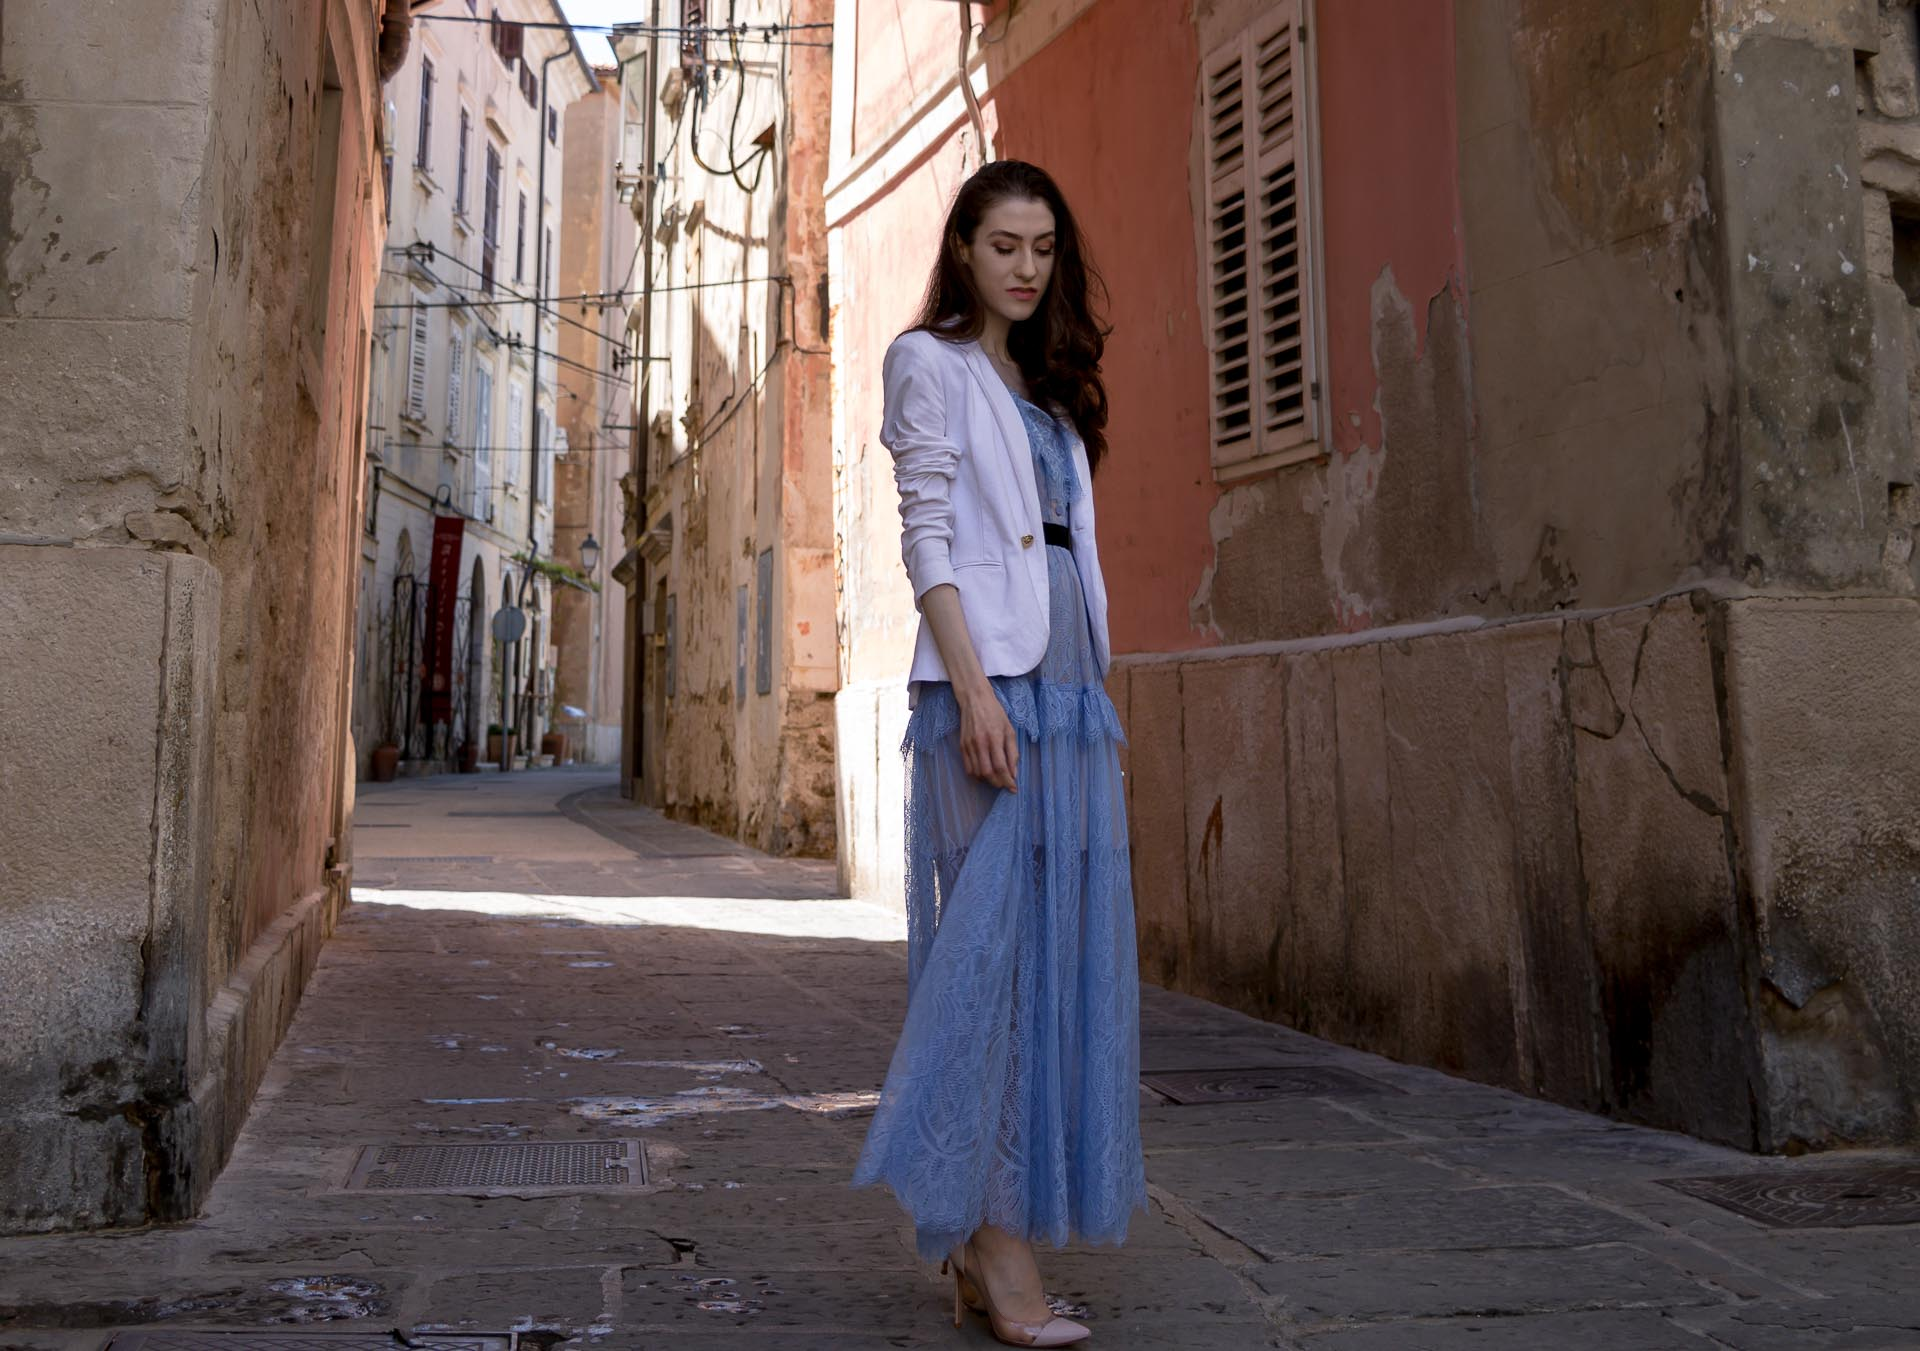 Veronika Lipar Fashion Blogger of Brunette from Wall Street dressed in Self-Portrait blue lace midi dress, white single button blazer, blush Gianvito Rossi plexi pumps, white shoulder bag, Lespecs white cat eye sunglasses while standing hidden alley in small Italian village